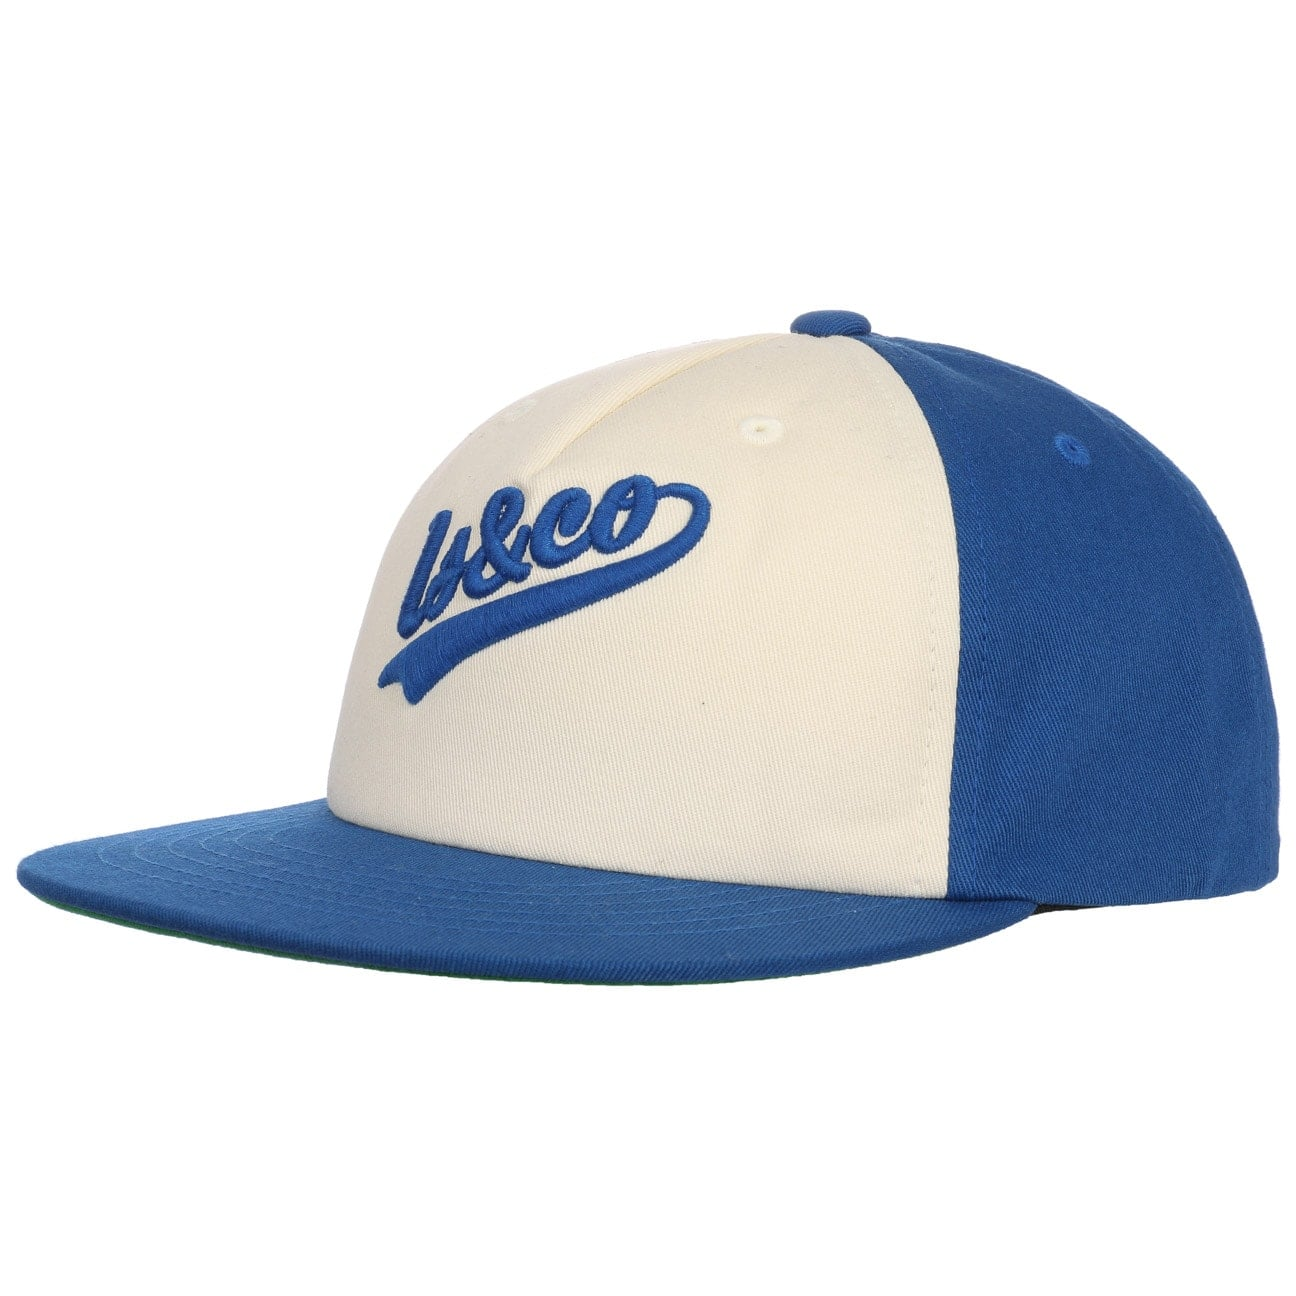 Ls & Co Snapback Cap by Levis  Basecap